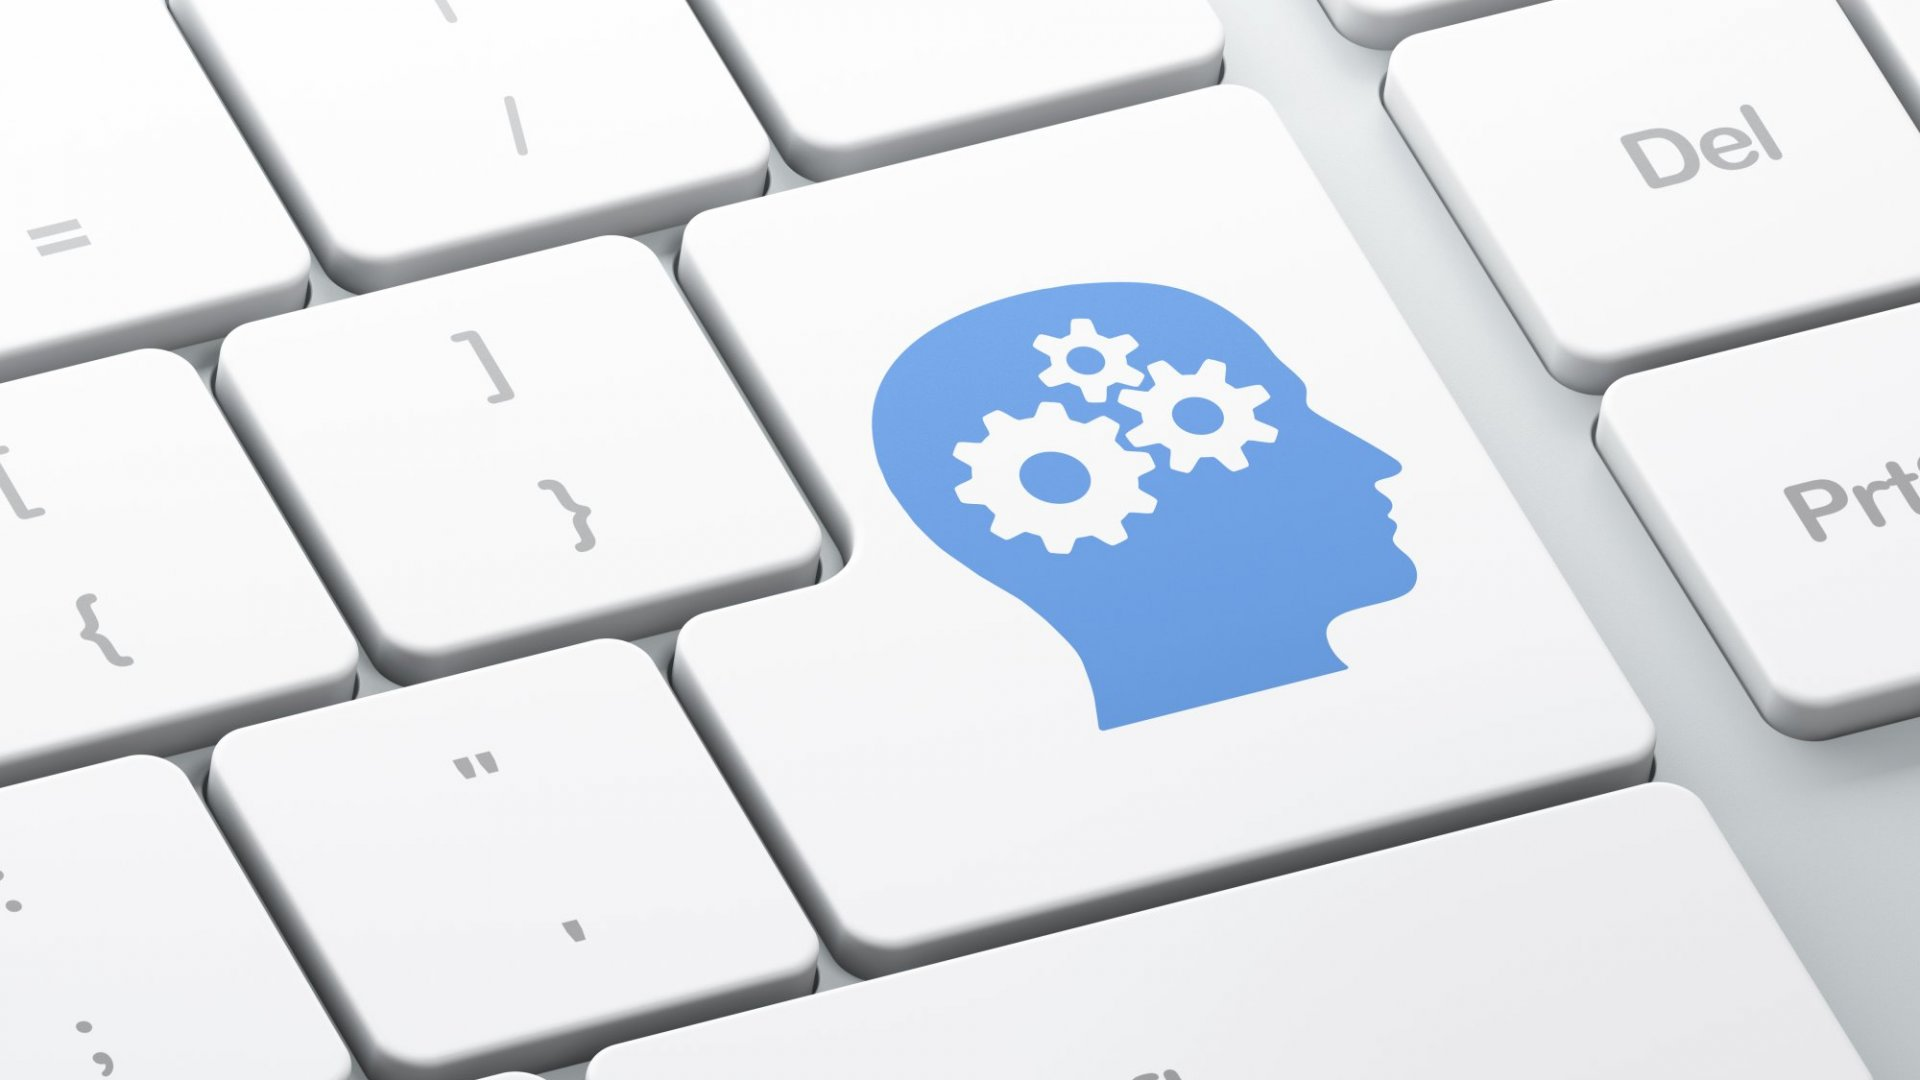 Online Learning has quietly become a $107 billion industry.